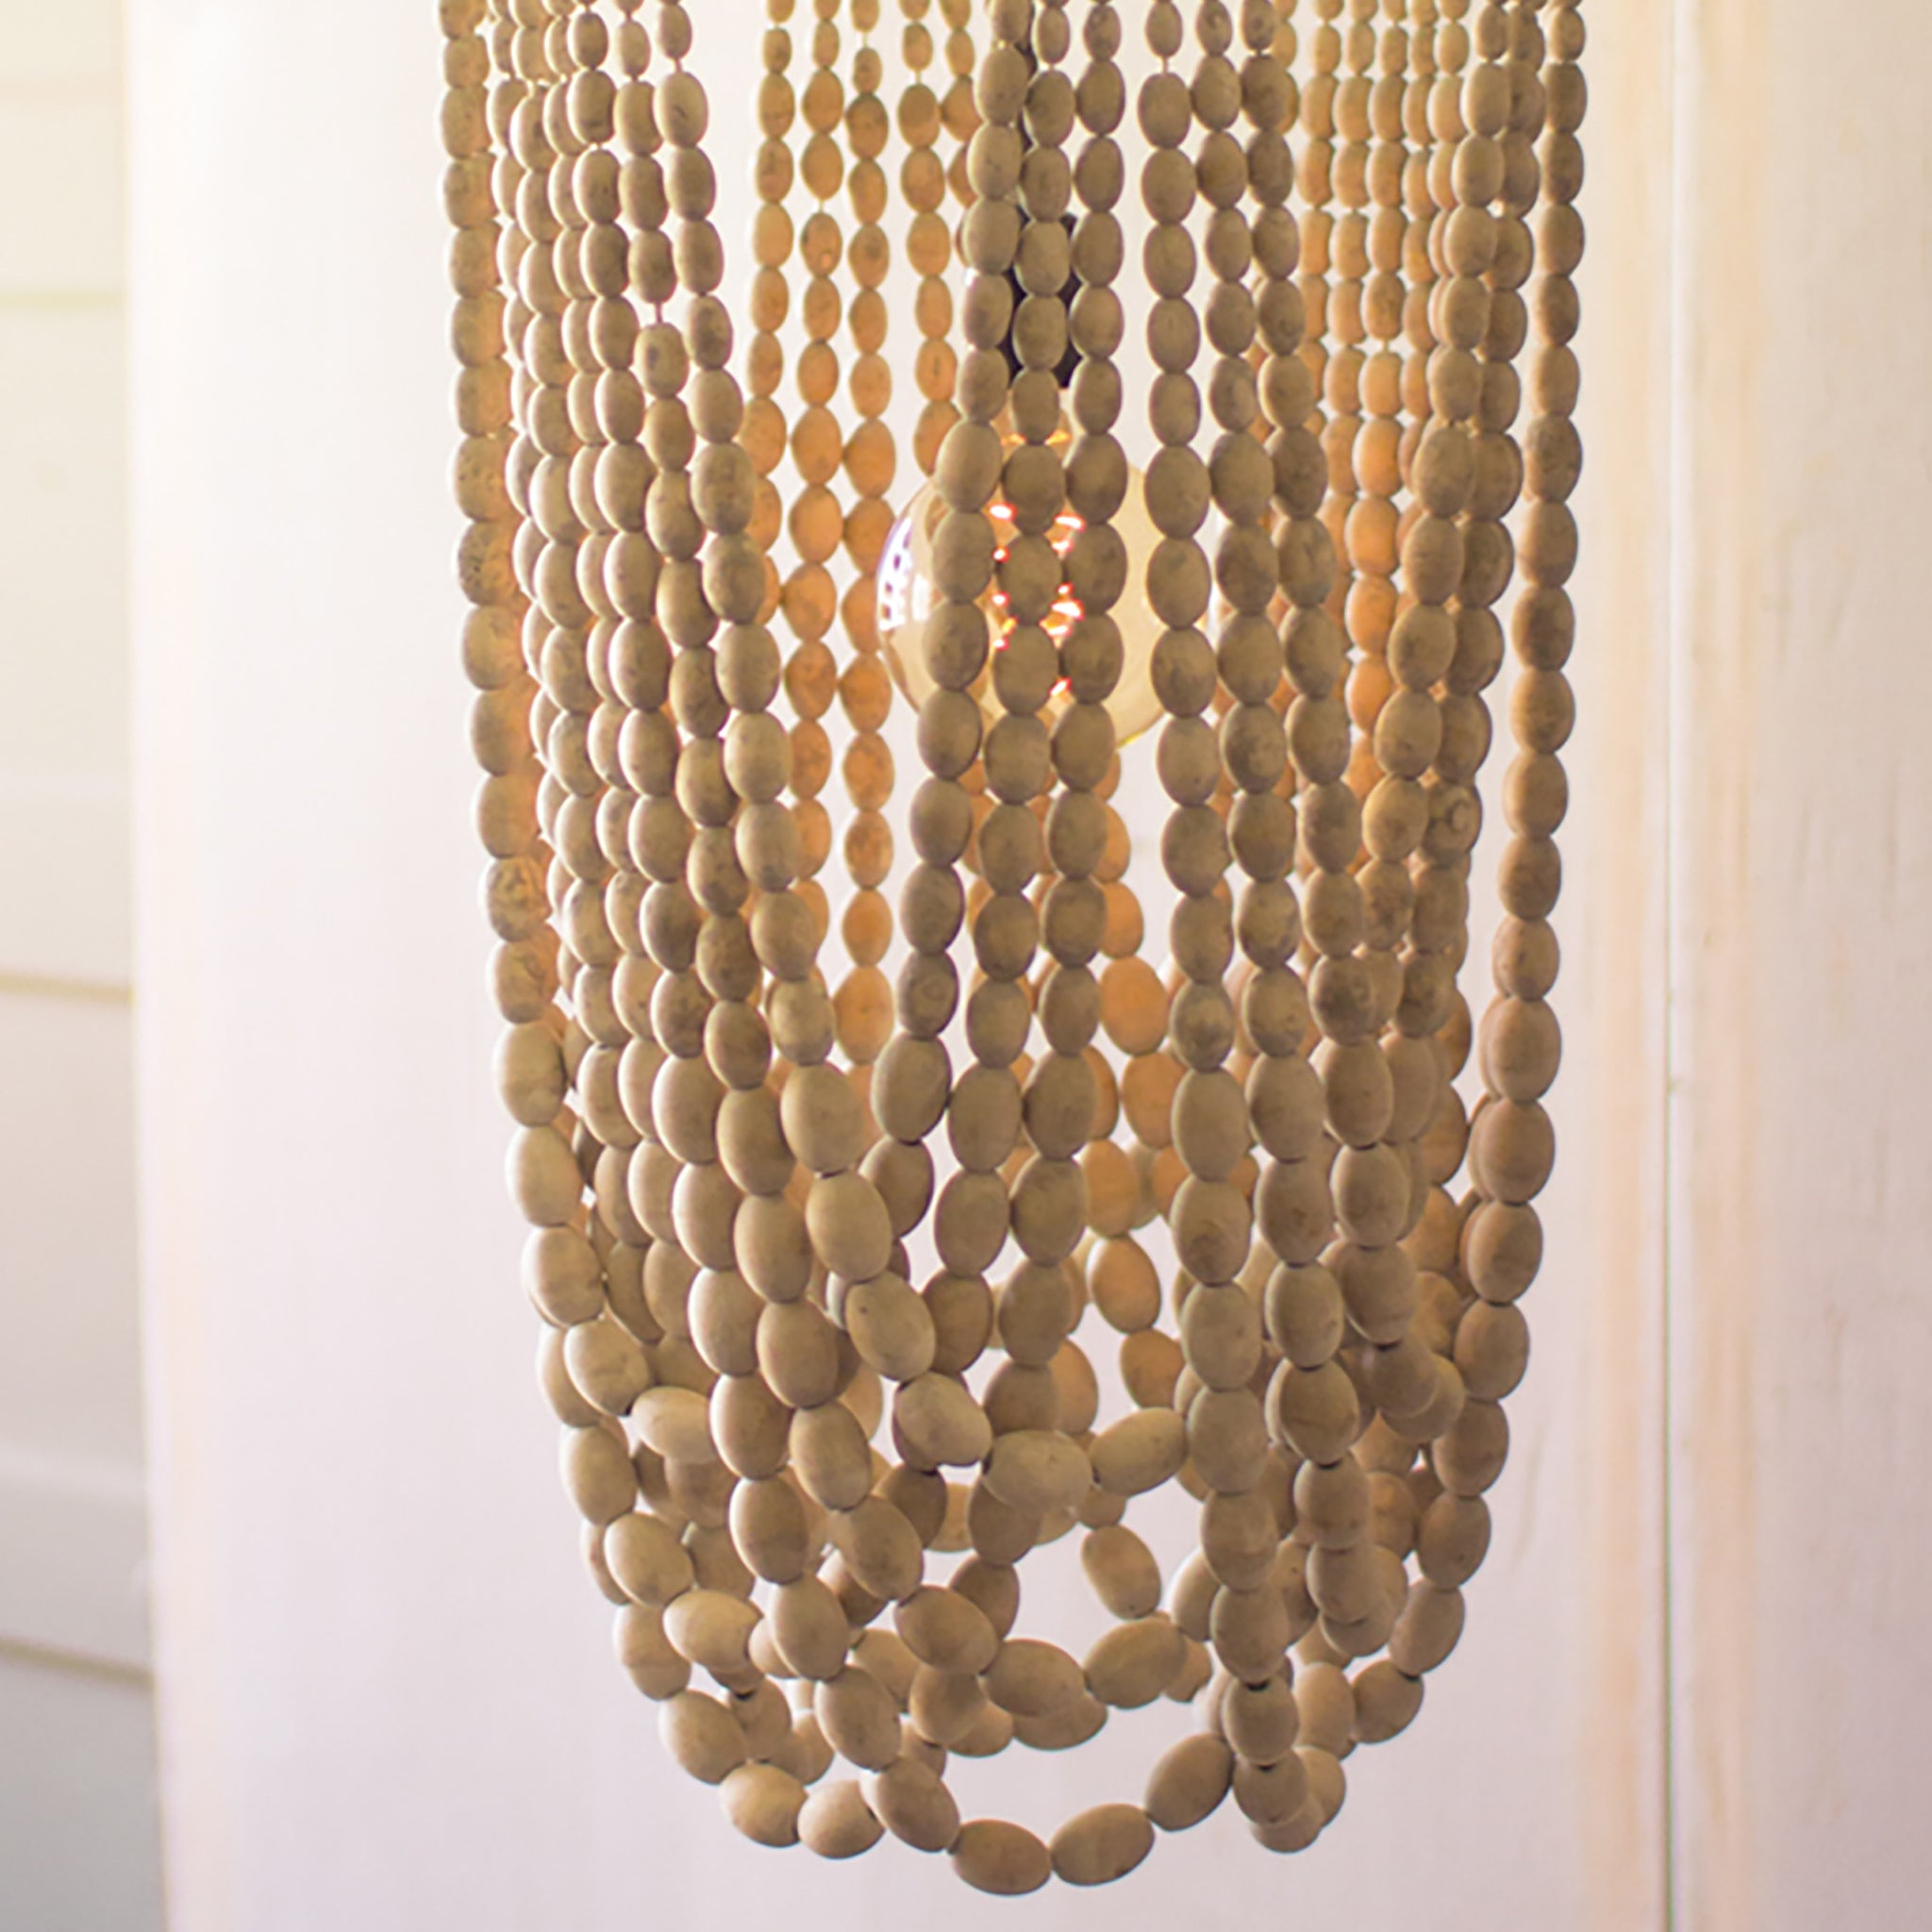 simply grey african room south s ombre made hand clay beaded makes africa it this with from available wooden the bead pin chandelier